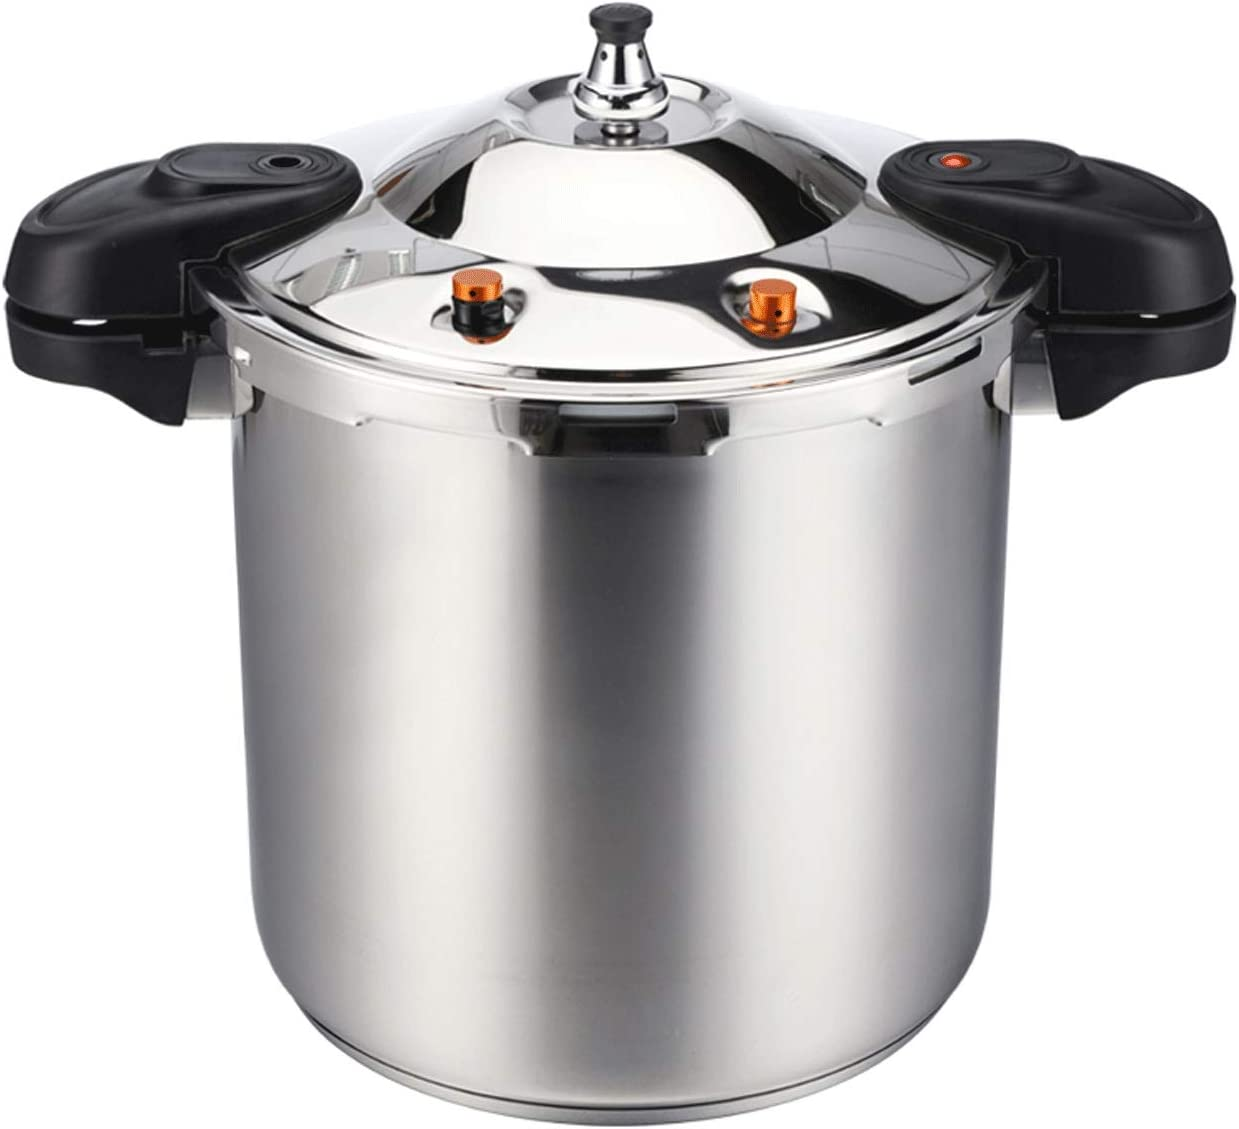 Z-COLOR 304 Stainless Steel Large Pressure Cooker, Explosion-proof High-pressure Six-layer Protection Commercial Large Family Soup Pot Slow Cooker (Size : 20L)